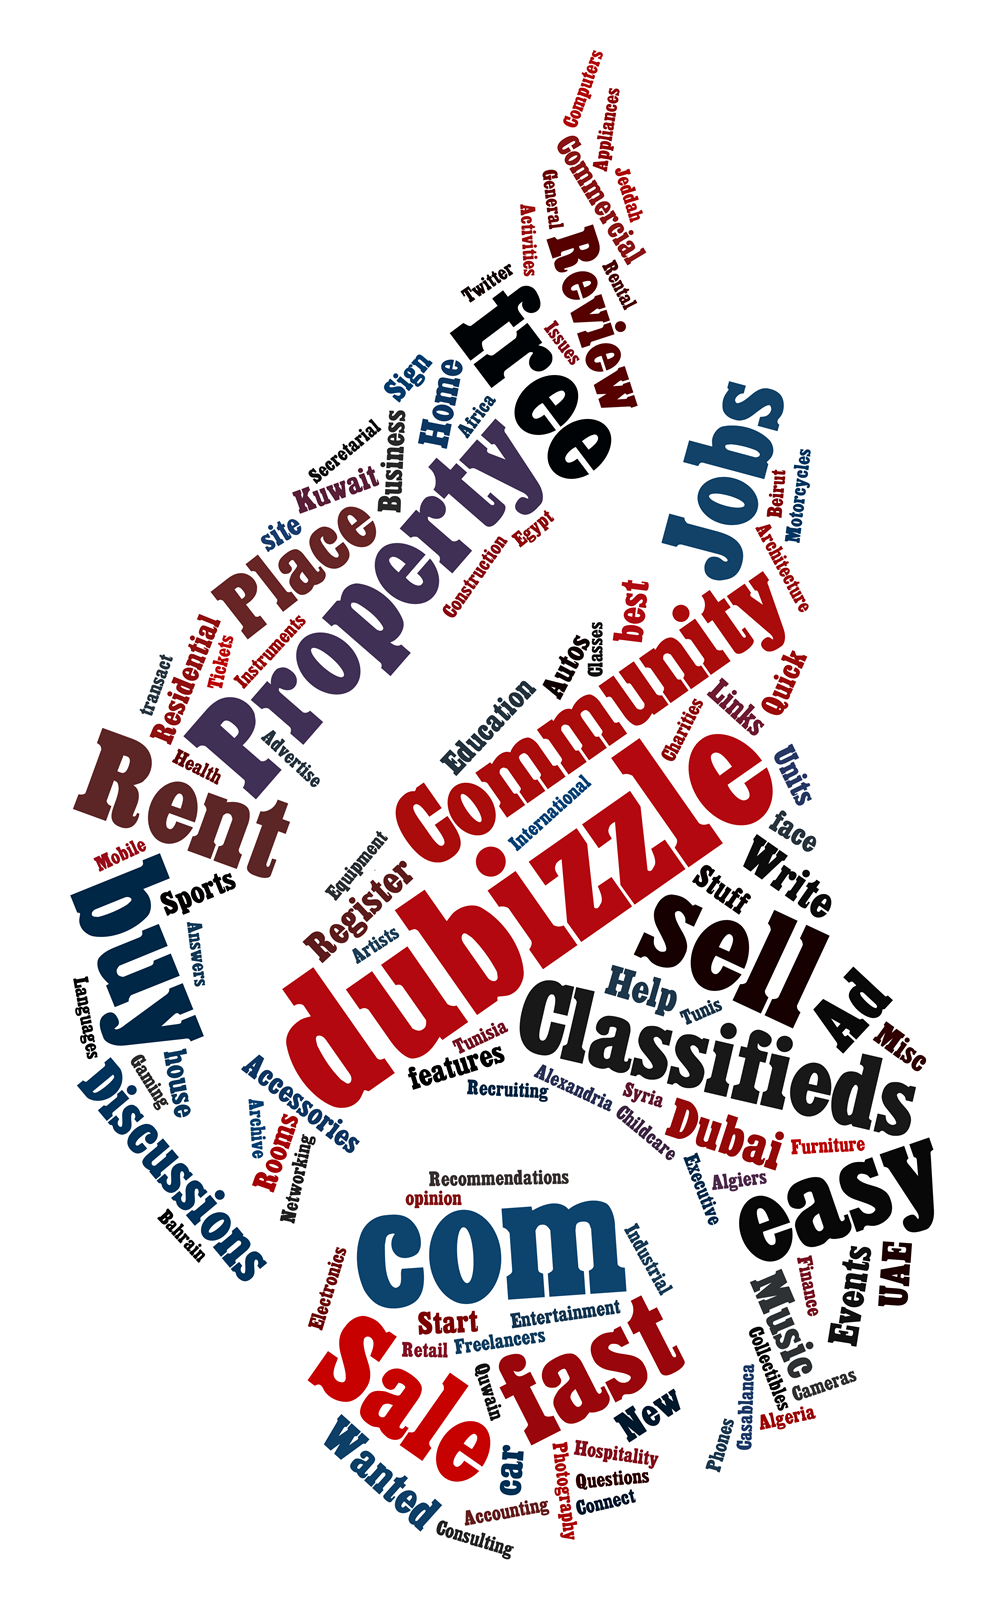 dubizzle.com word cloud art created on tagxedo.com